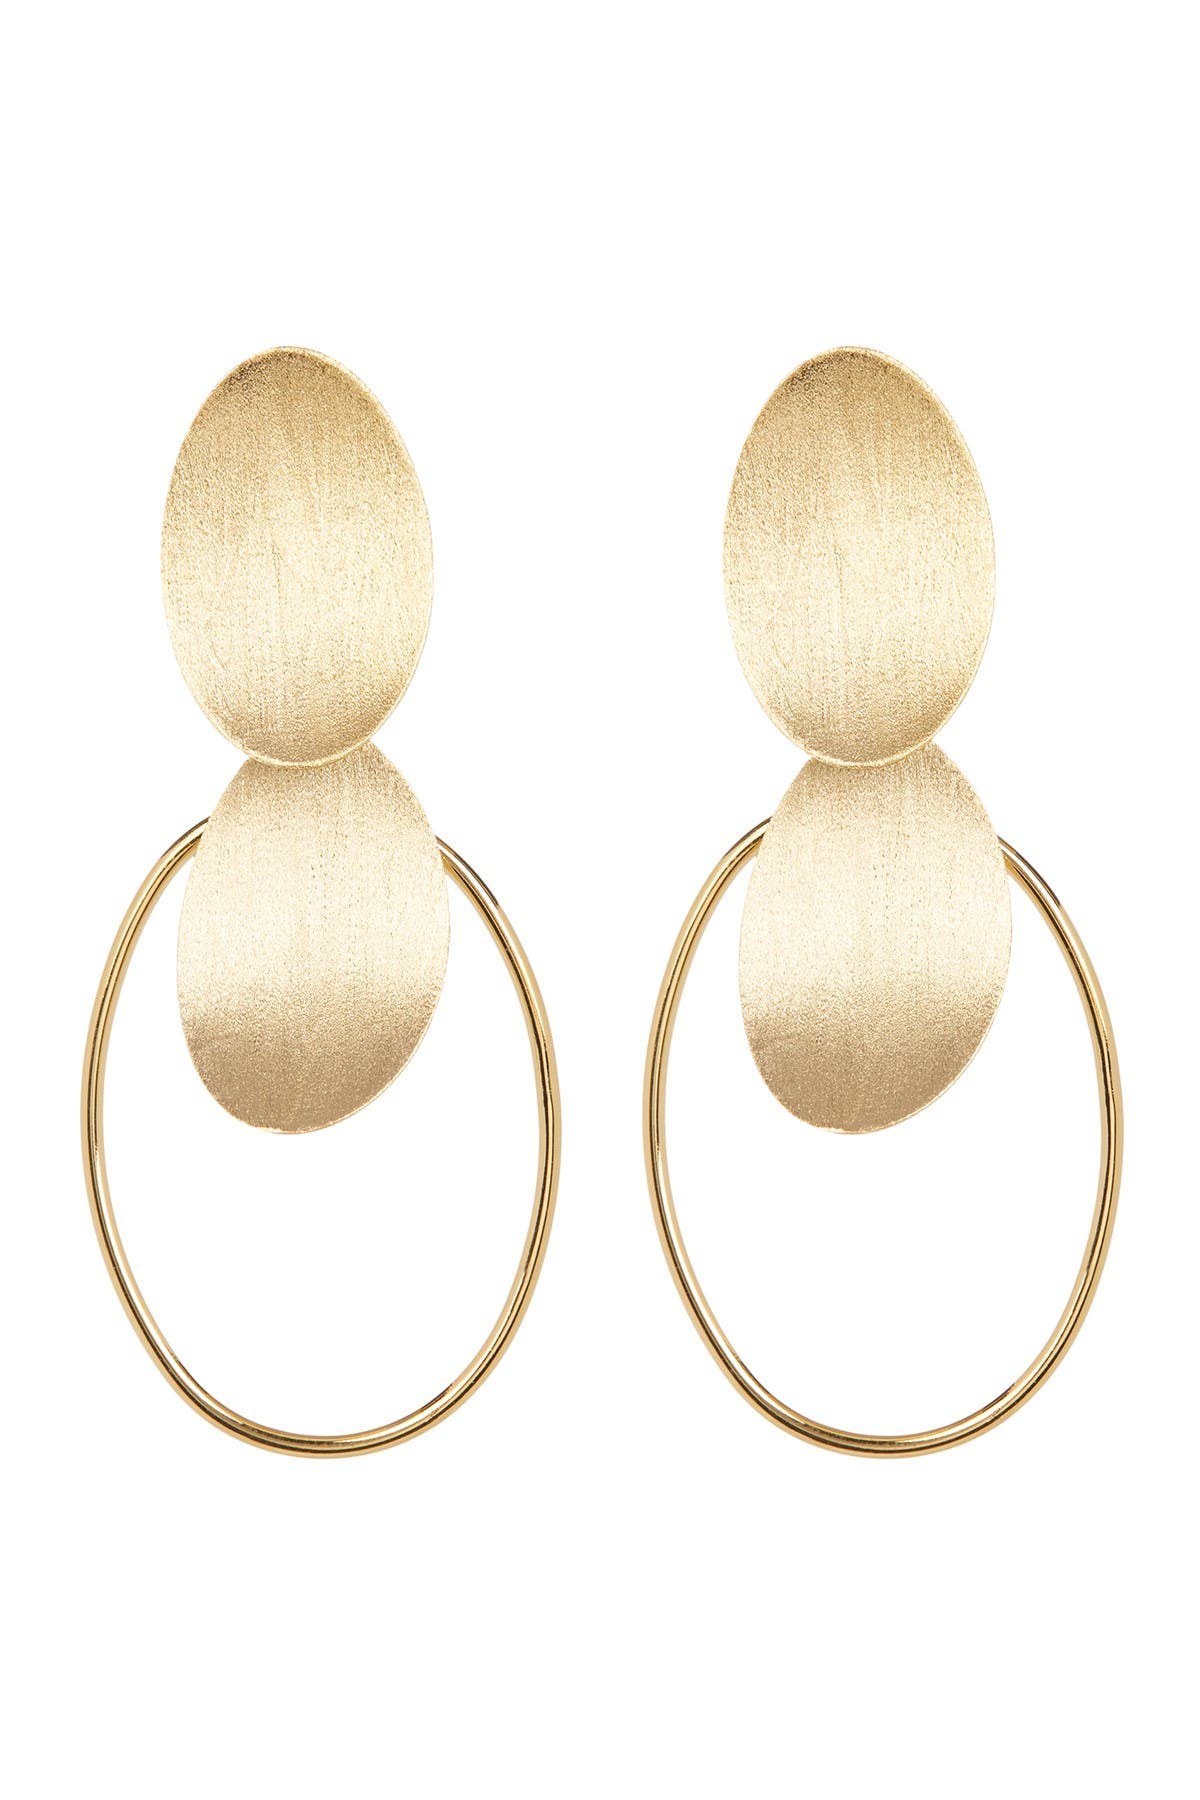 Image of Rivka Friedman 18K Gold Plated Concave Disc Cascading Dangle Earrings